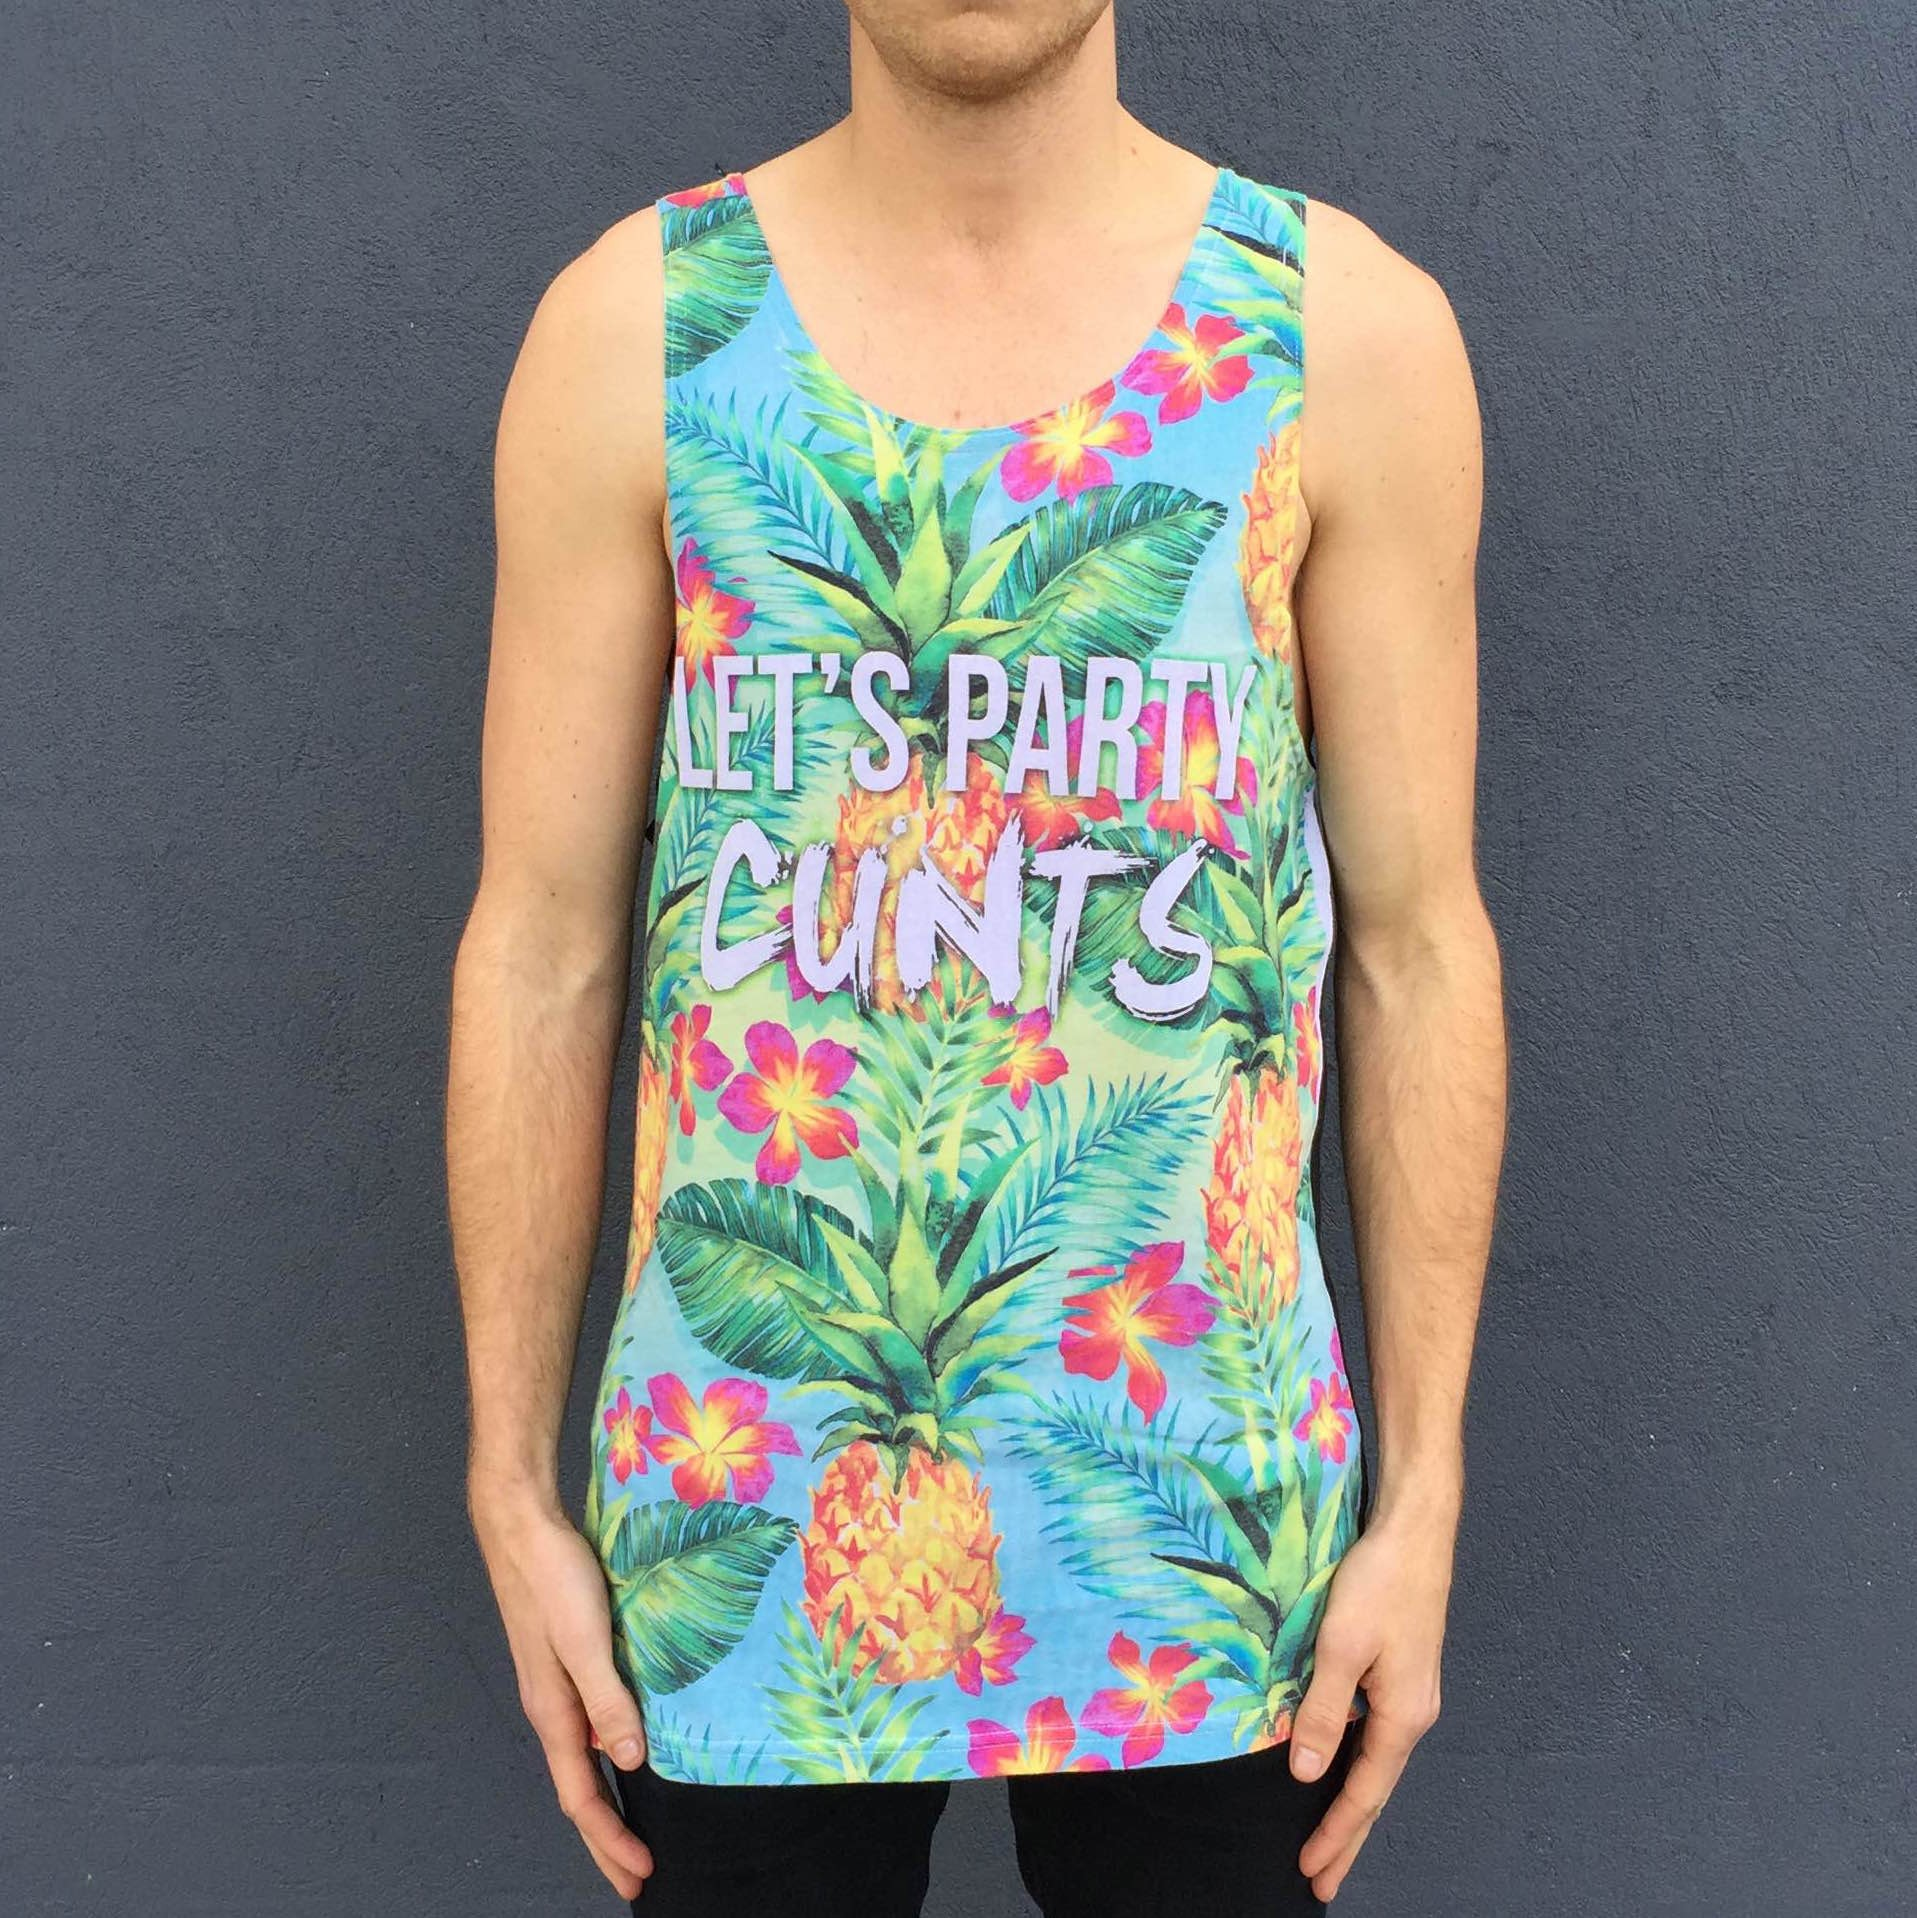 FULL PRINT LETS PARTY SINGLET